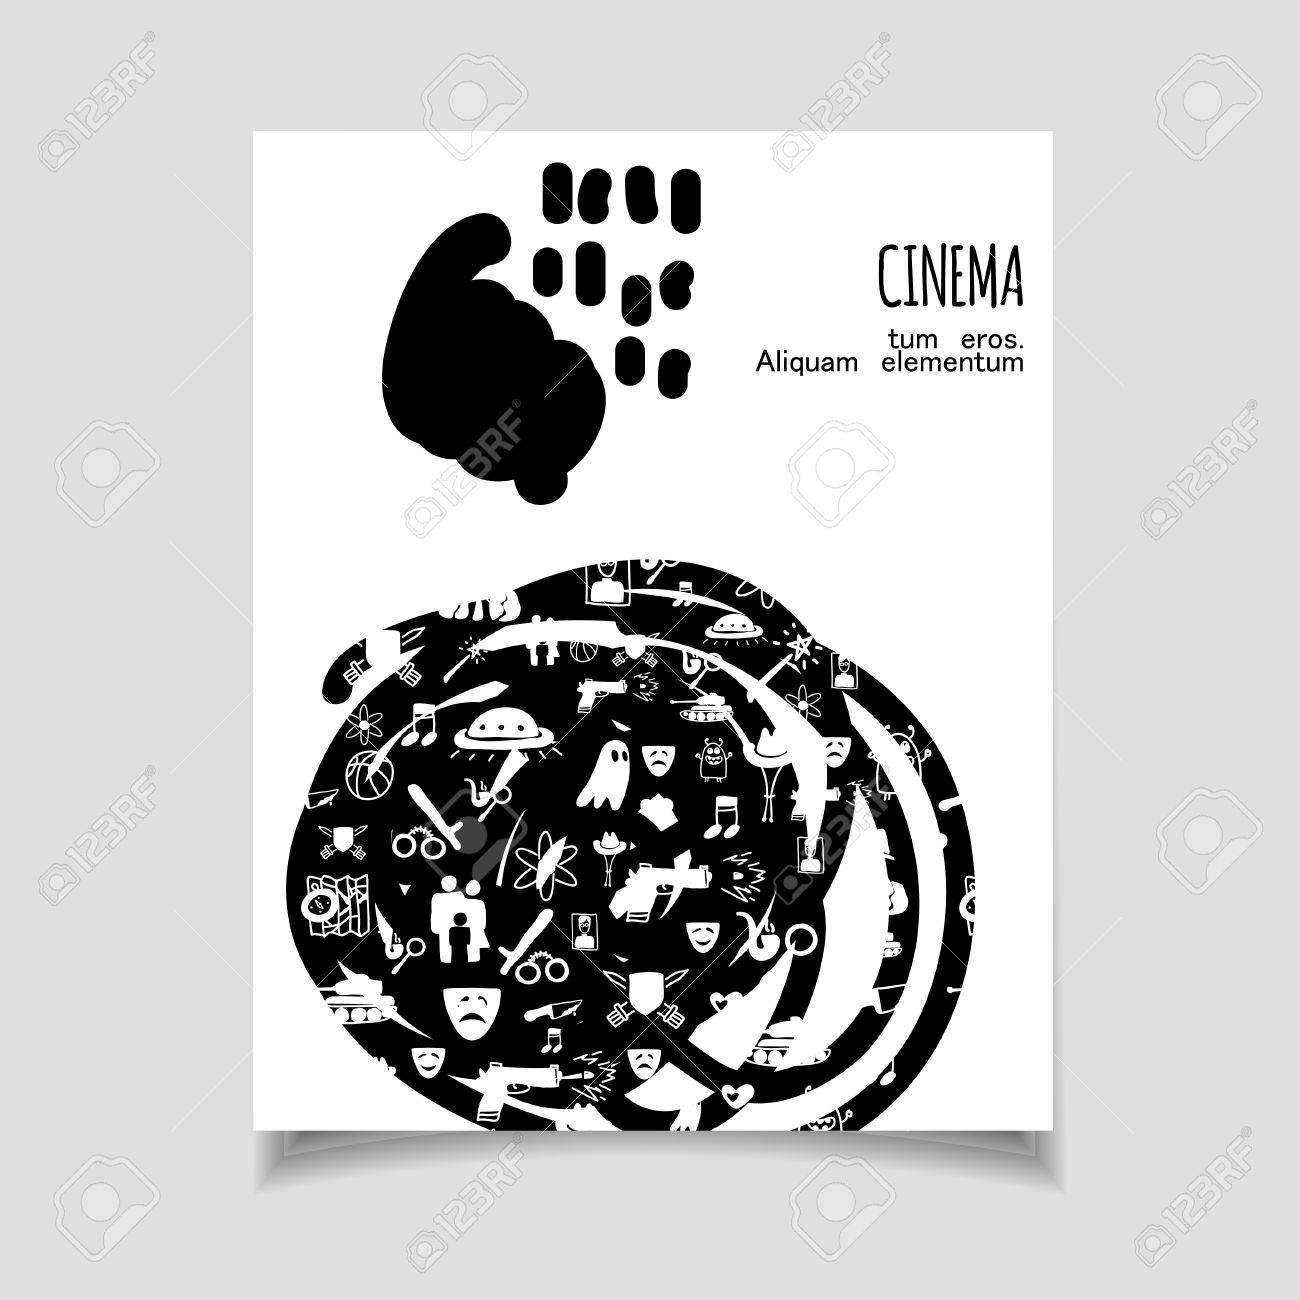 Cinema Vector Template Set. Movie Genre Theme: Action, Romance ...